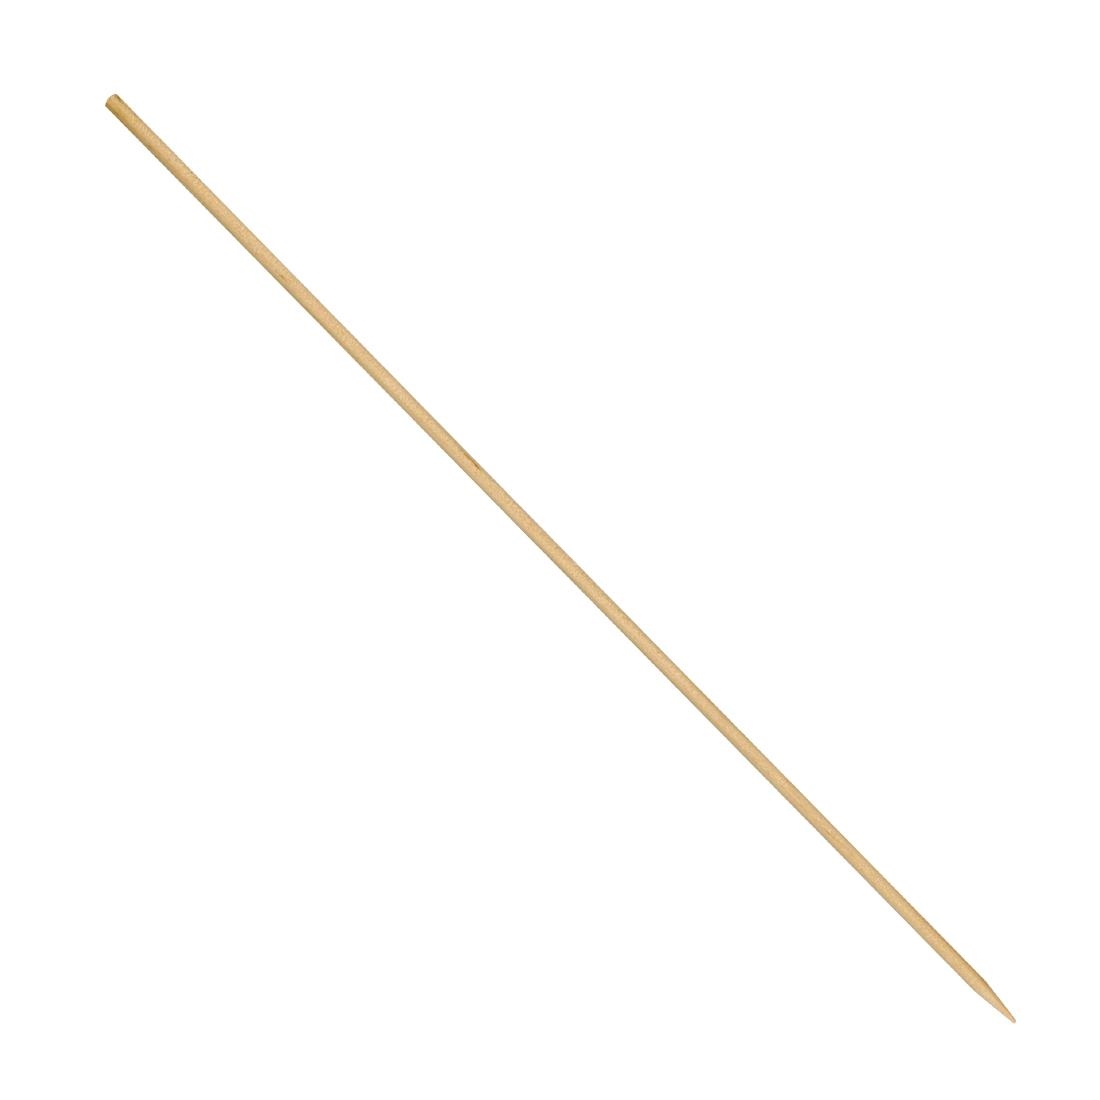 Fiesta Green Biodegradable Wooden Skewers 180mm Pack of 200